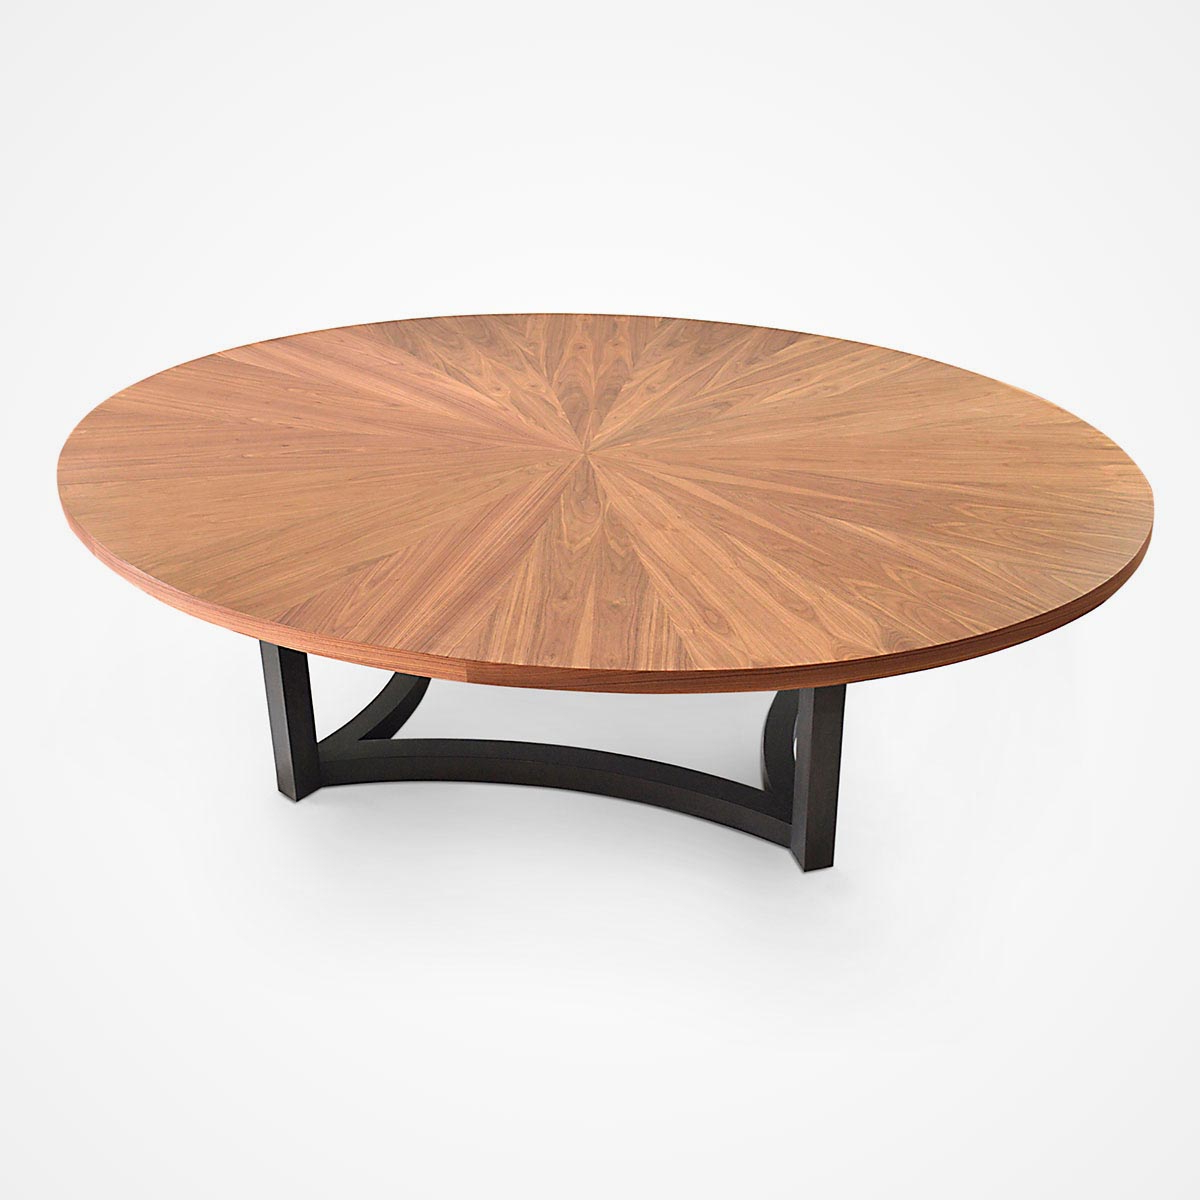 Well Liked Wood Top Dining Tables Intended For Walnut Veneer Oval Top Dining Table (View 26 of 30)